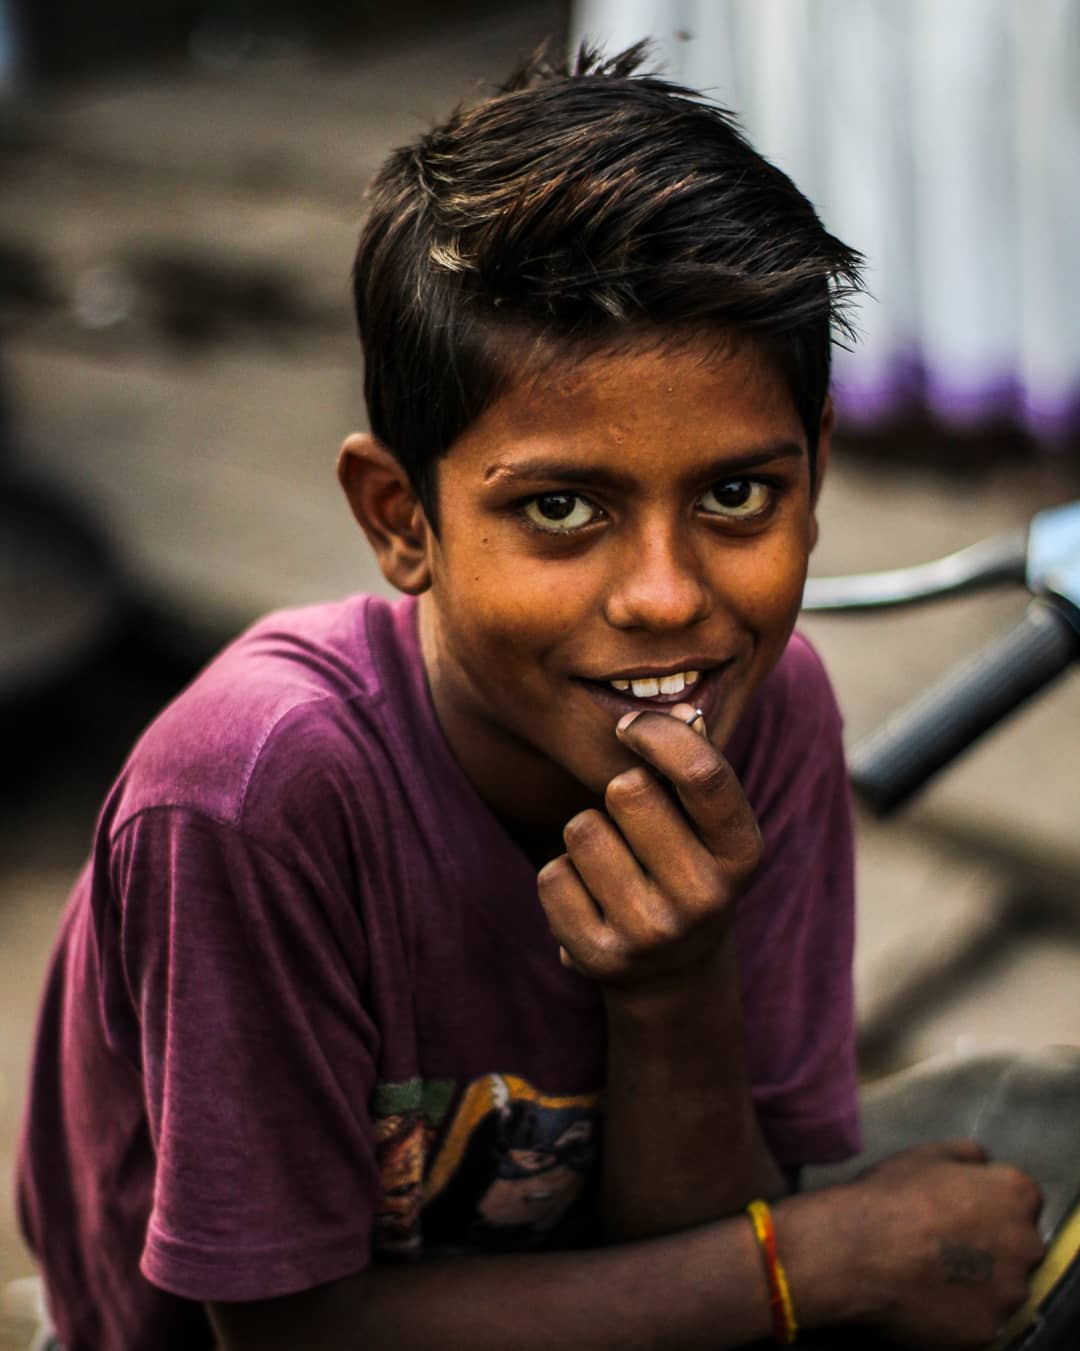 Portrait of a Boy, India